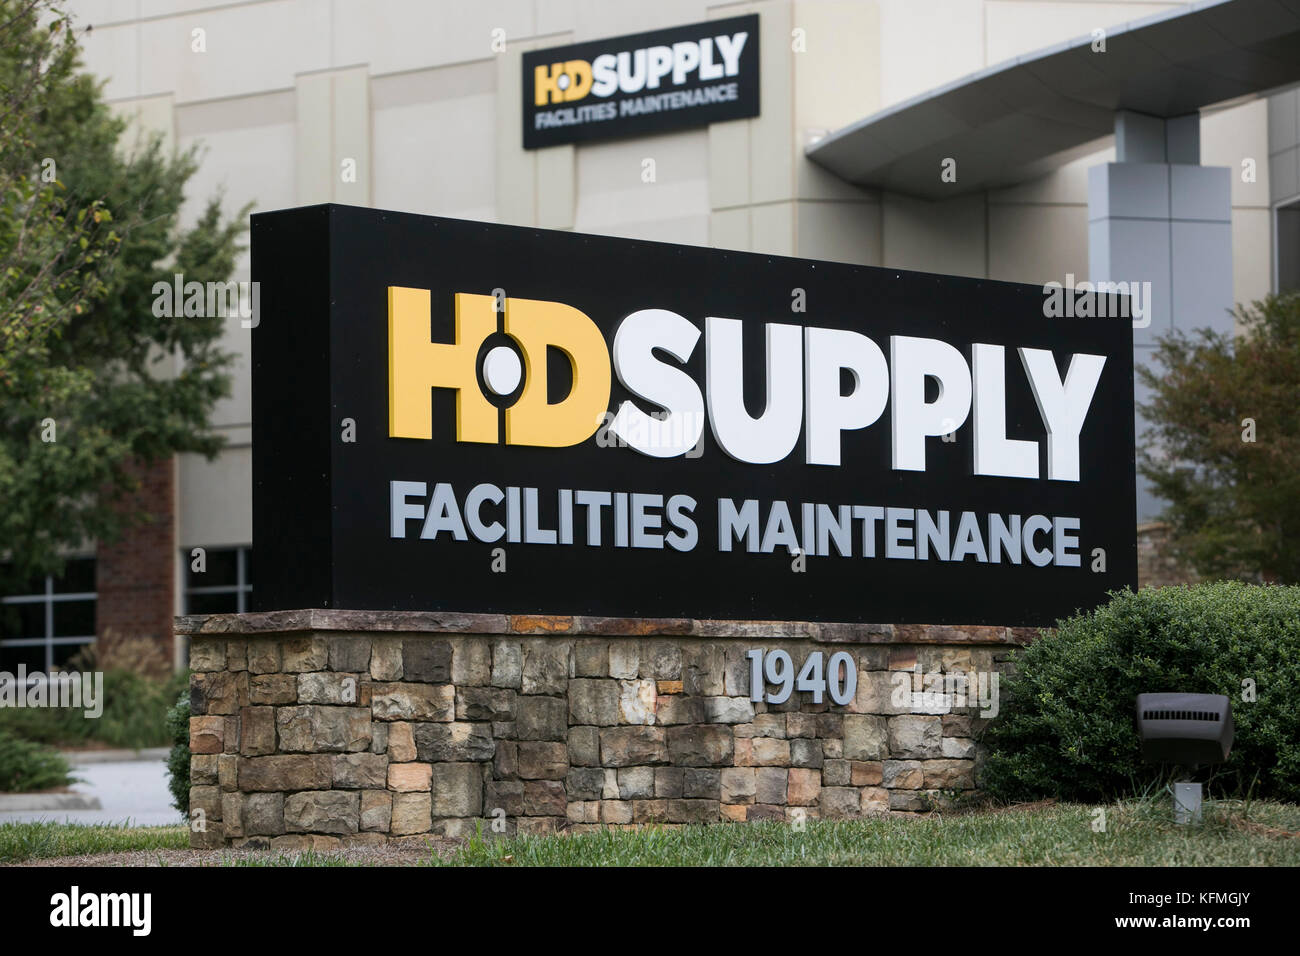 A logo sign outside of a facility occupied by HD Supply Facilities Maintenance in Marietta, Georgia on October 7, - Stock Image